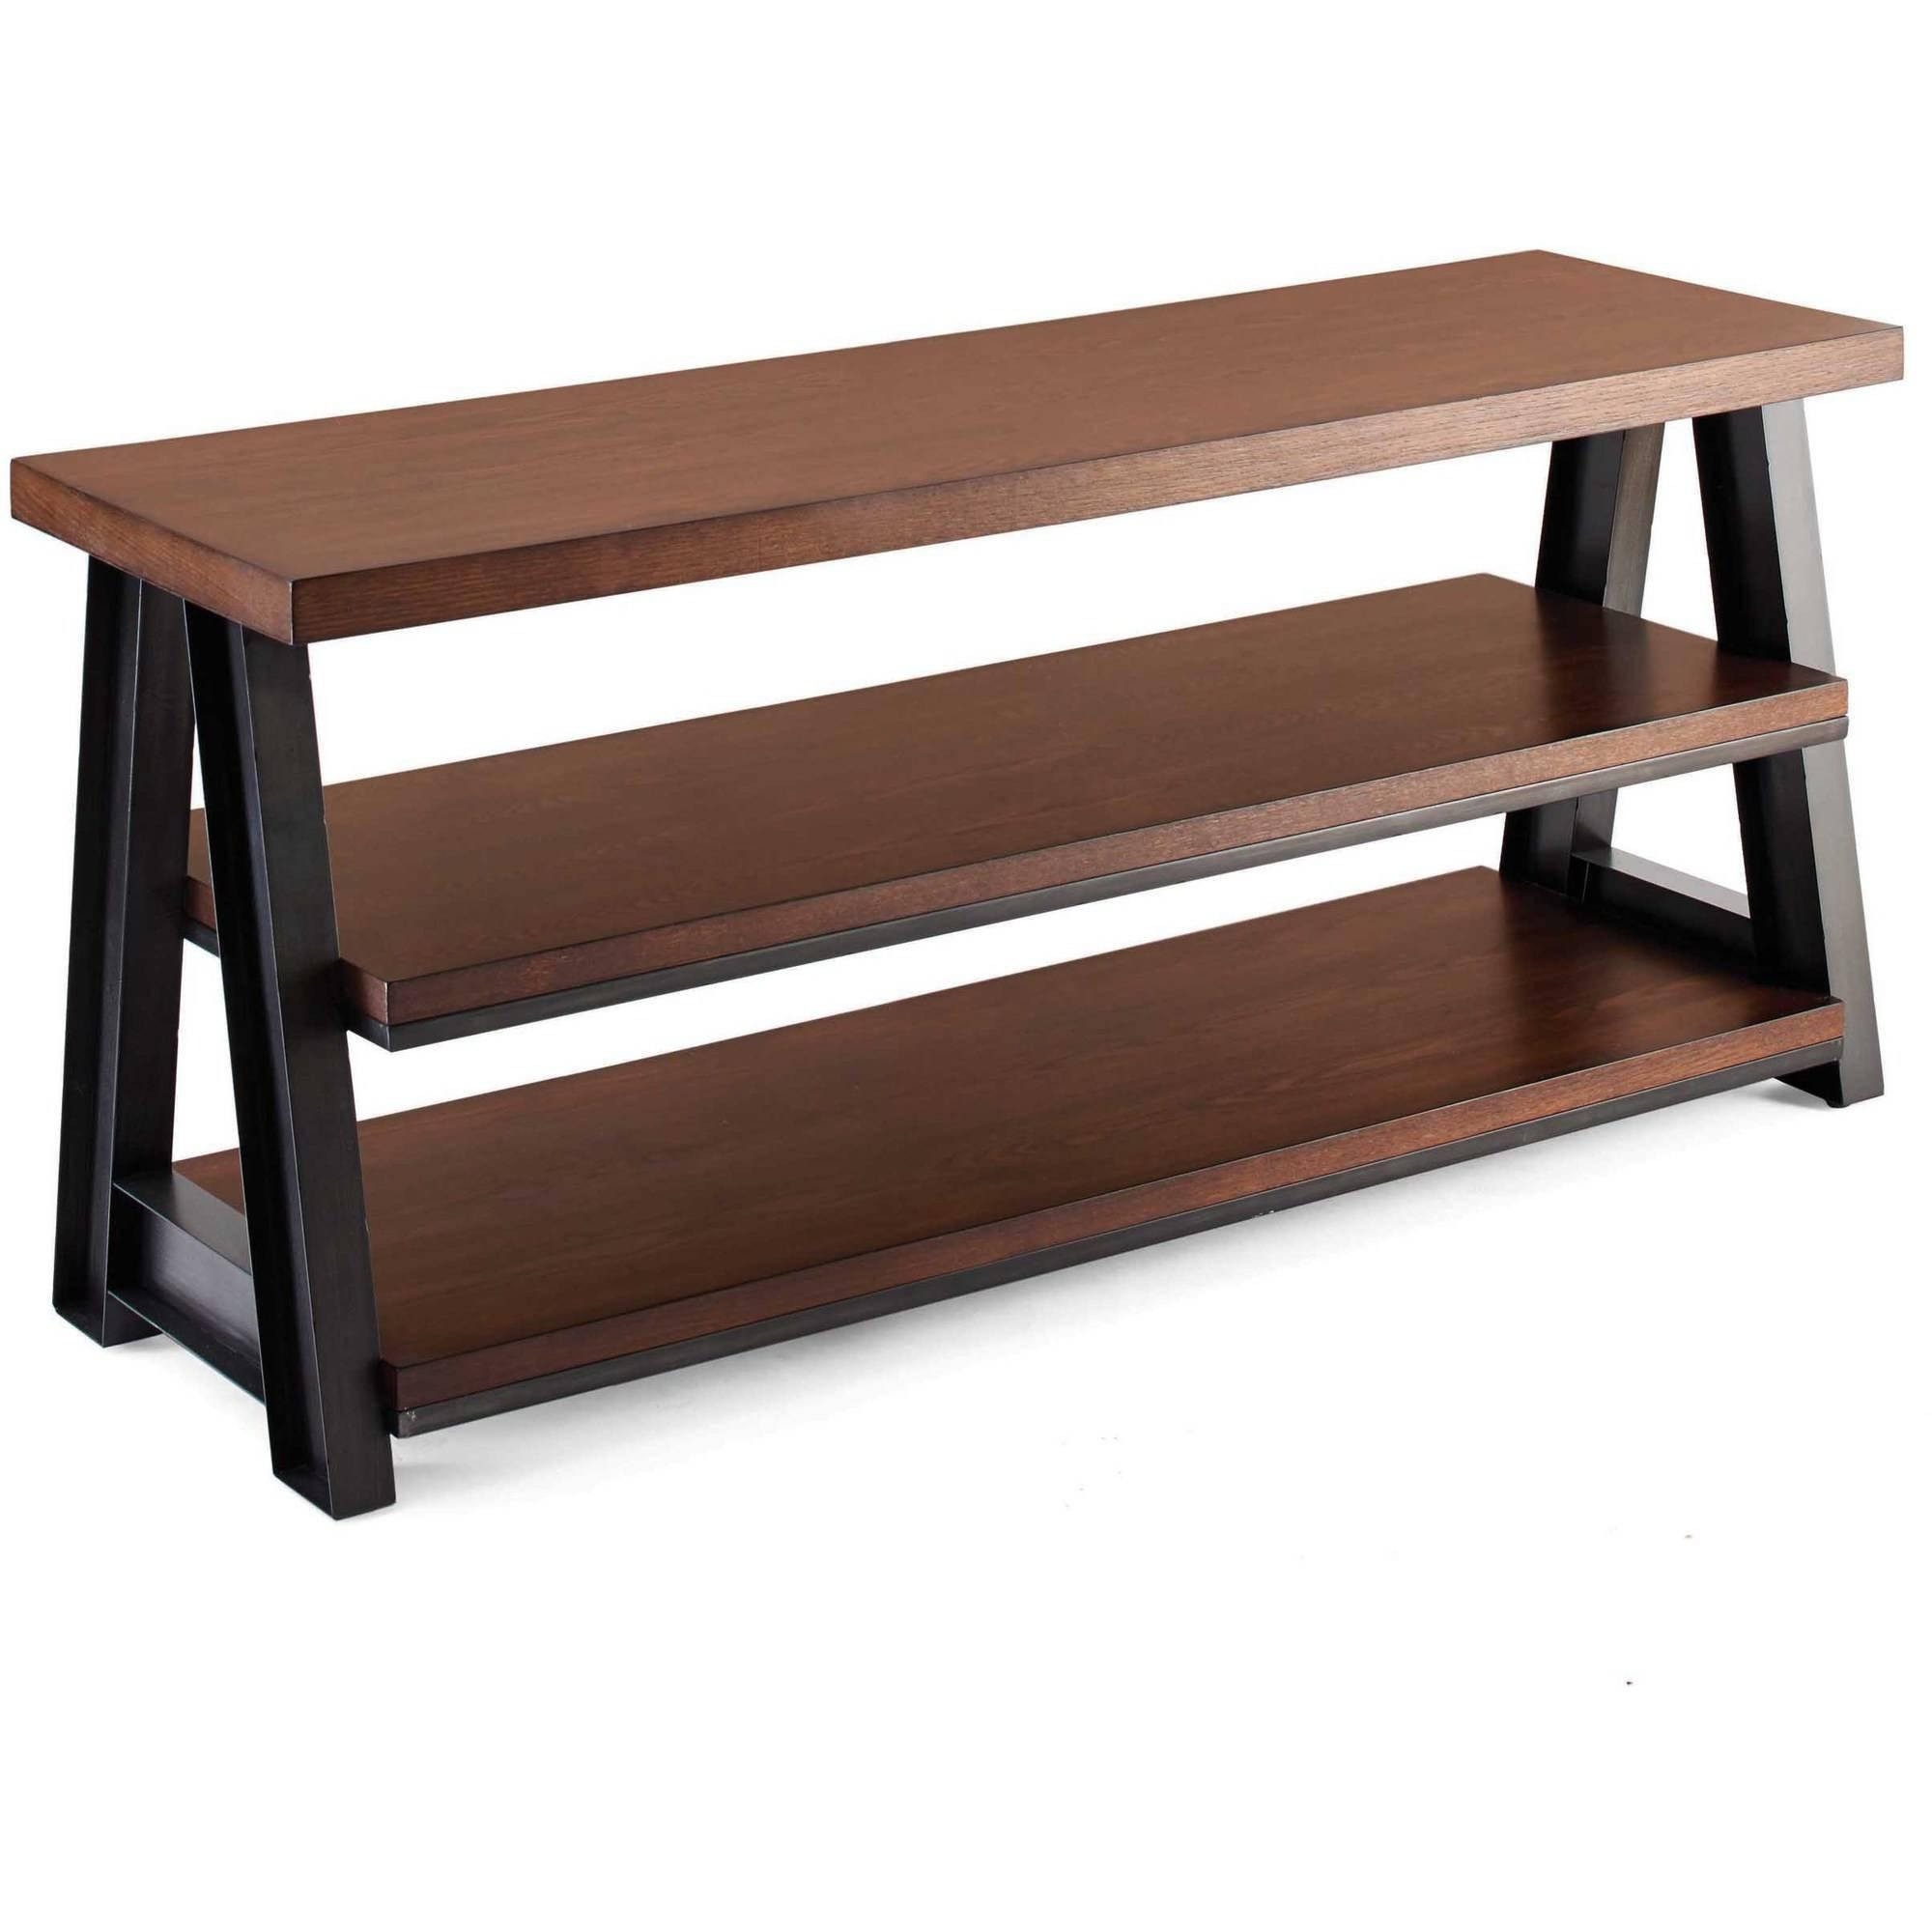 Better Homes And Gardens Tv Brown 3 In 1 Mercer Stand For Tvs Up Pertaining To Popular Radiator Cover Tv Stand (View 3 of 15)